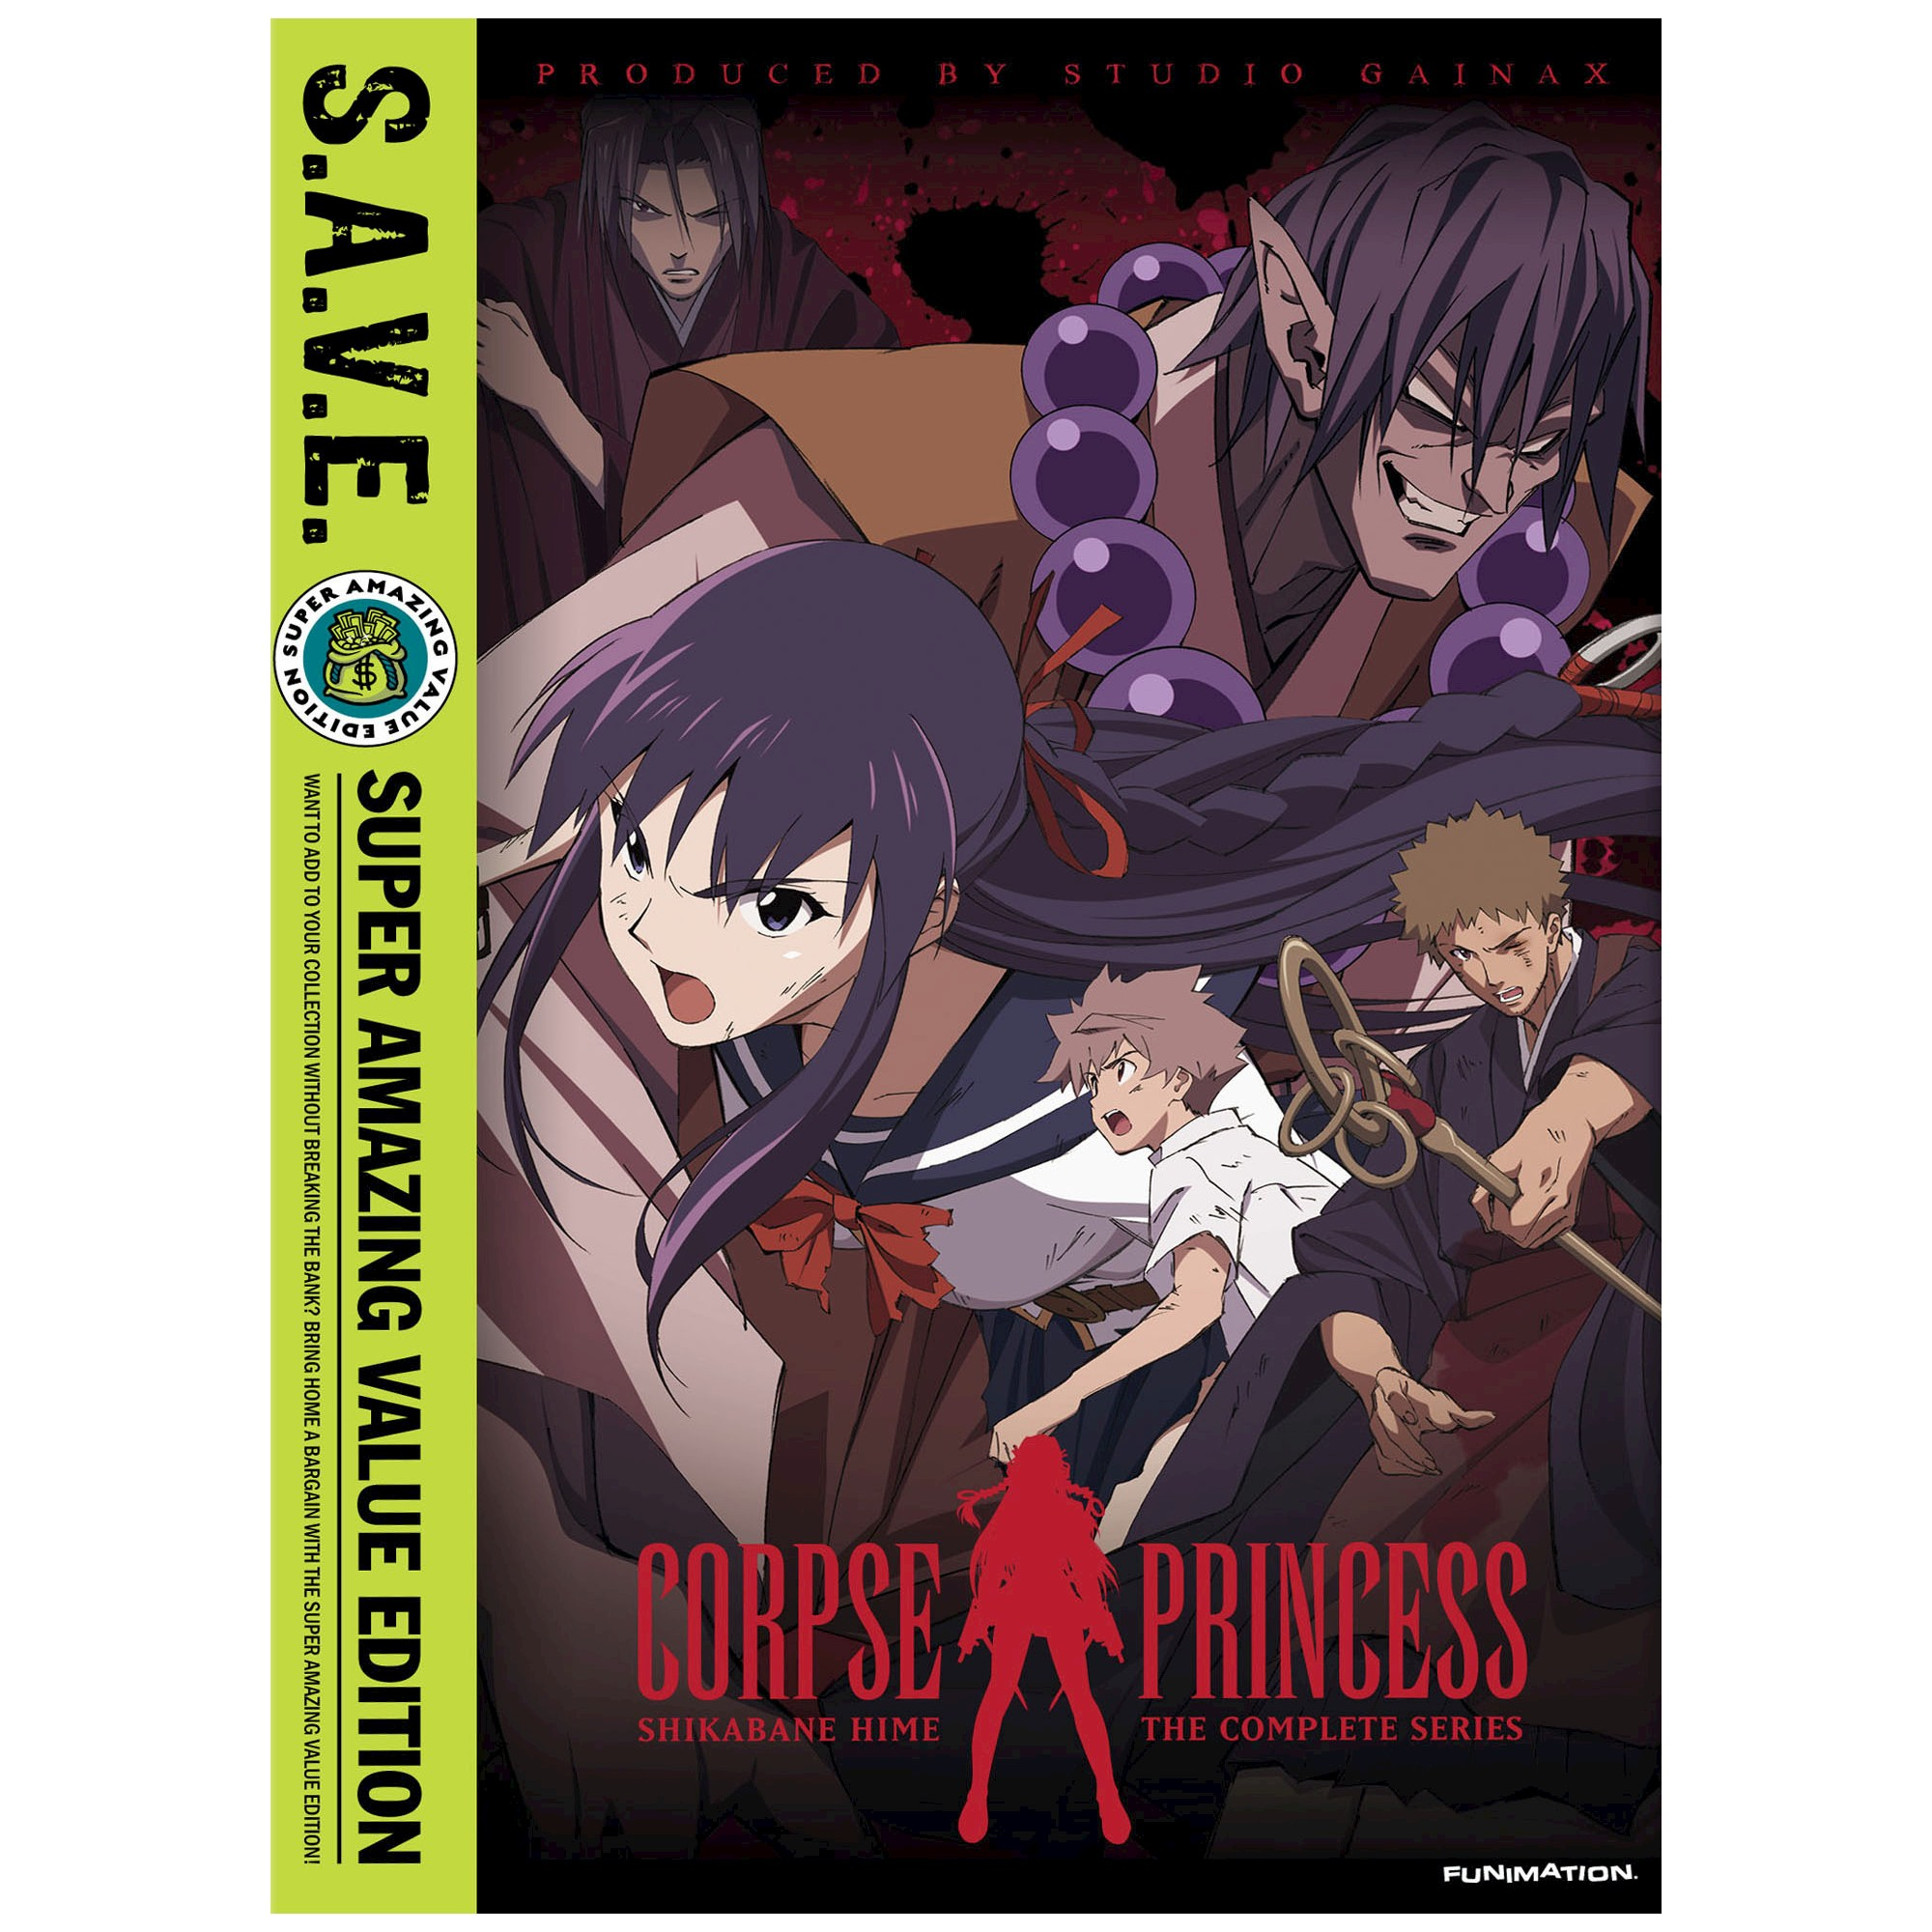 Corpse Princess The Complete Series Dvd In 2019 Products